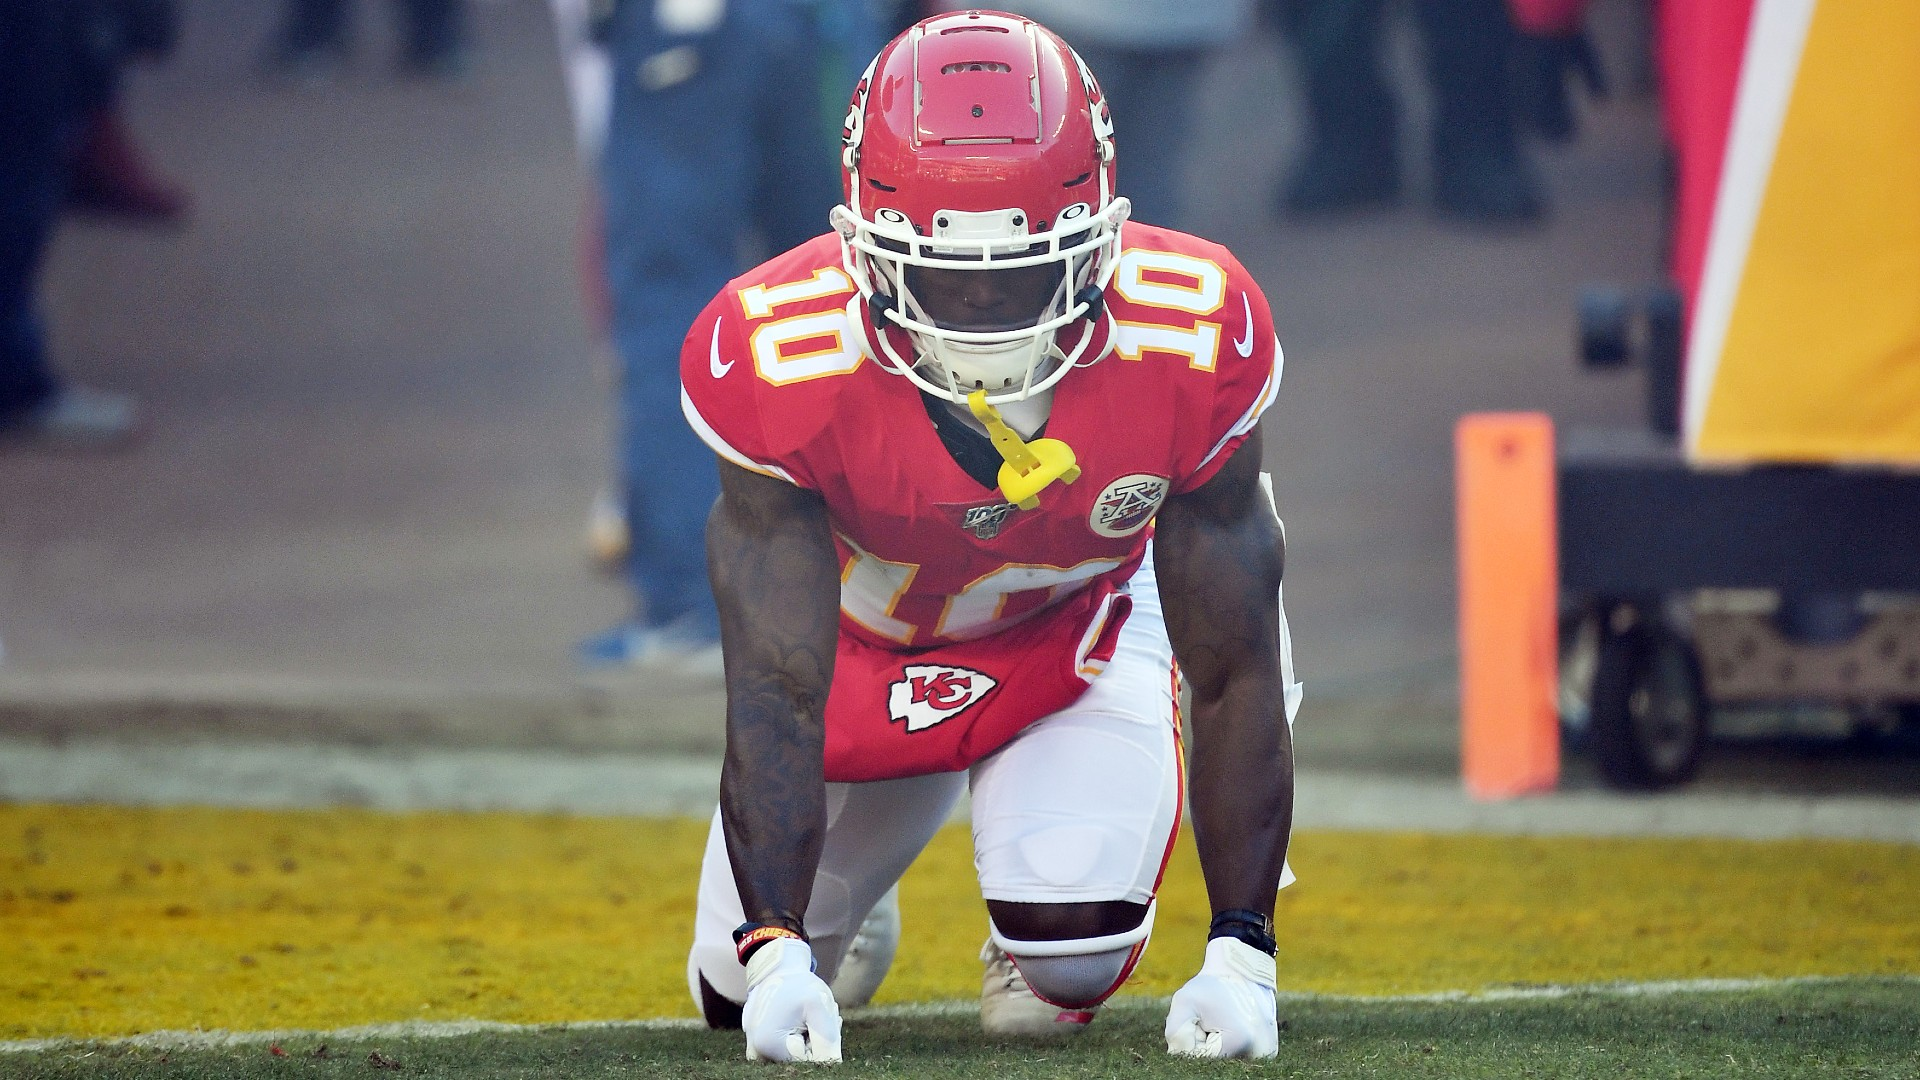 Chiefs' Tyreek Hill says he shoved coach Greg Lewis 'to give the guys energy'